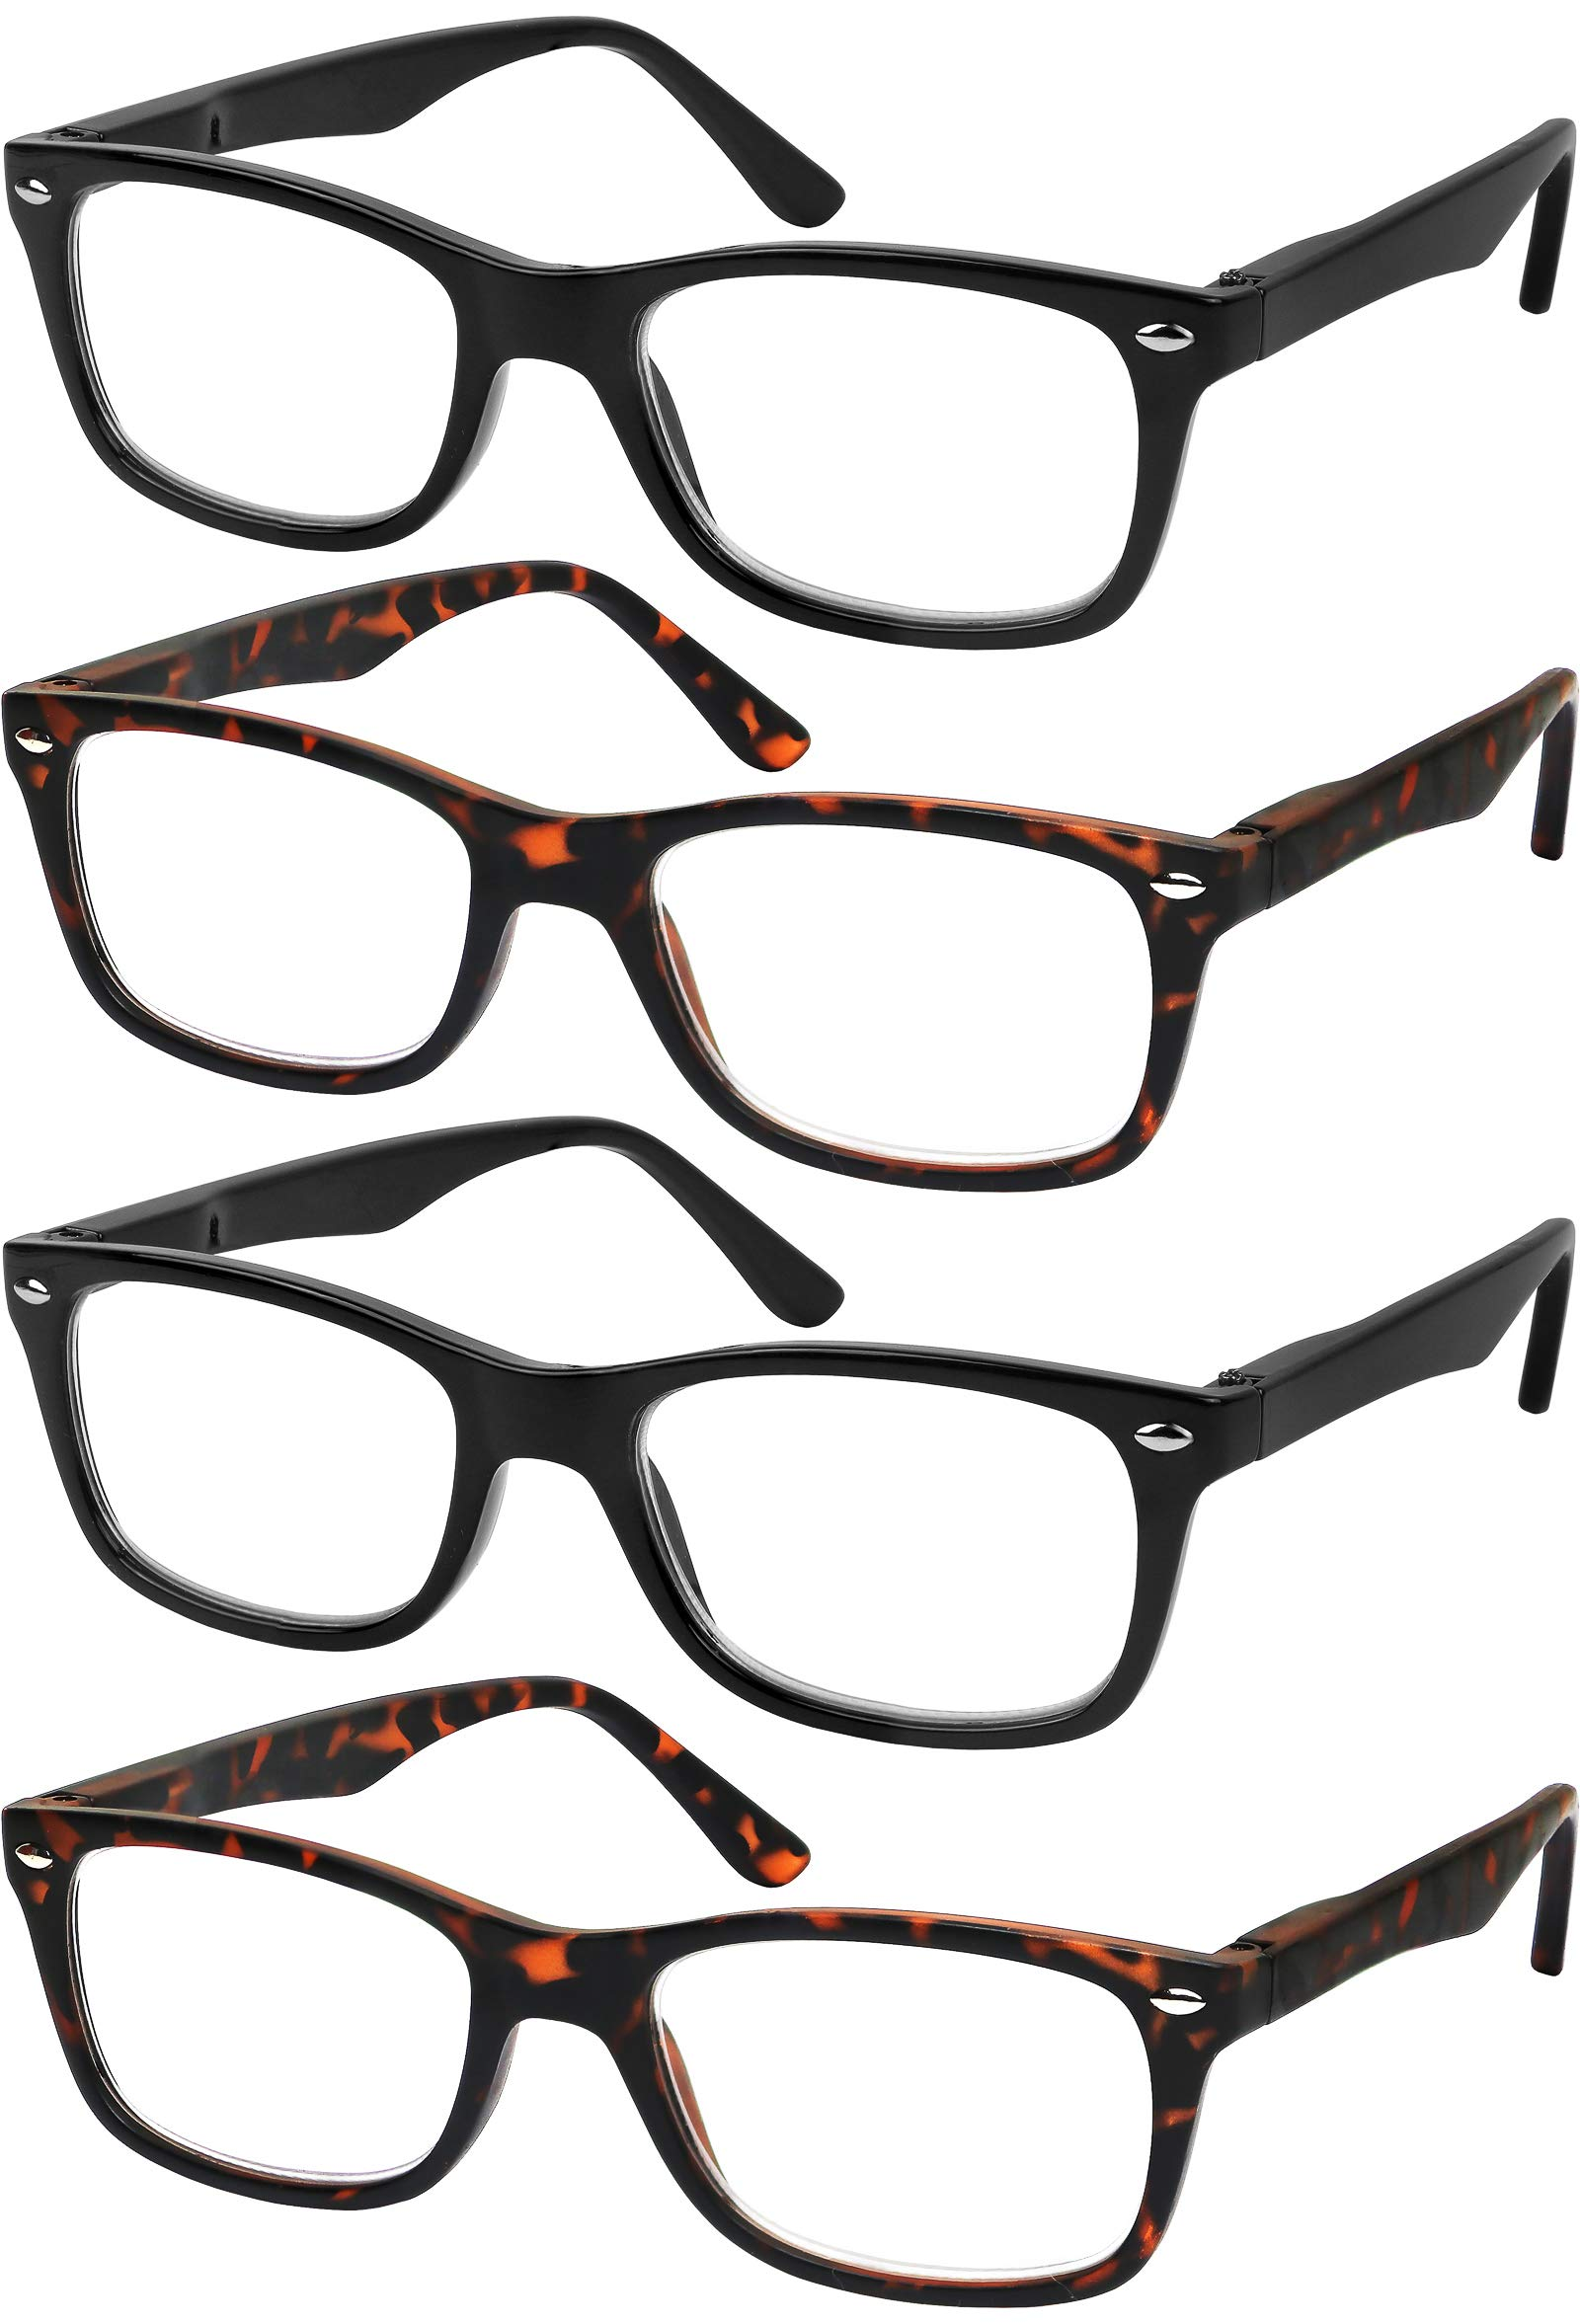 Reading Glasses Set of 4 Quality Readers Spring Hinge Glasses for Reading for Men and Women Set of 2 Black and 2 Havana +1.5